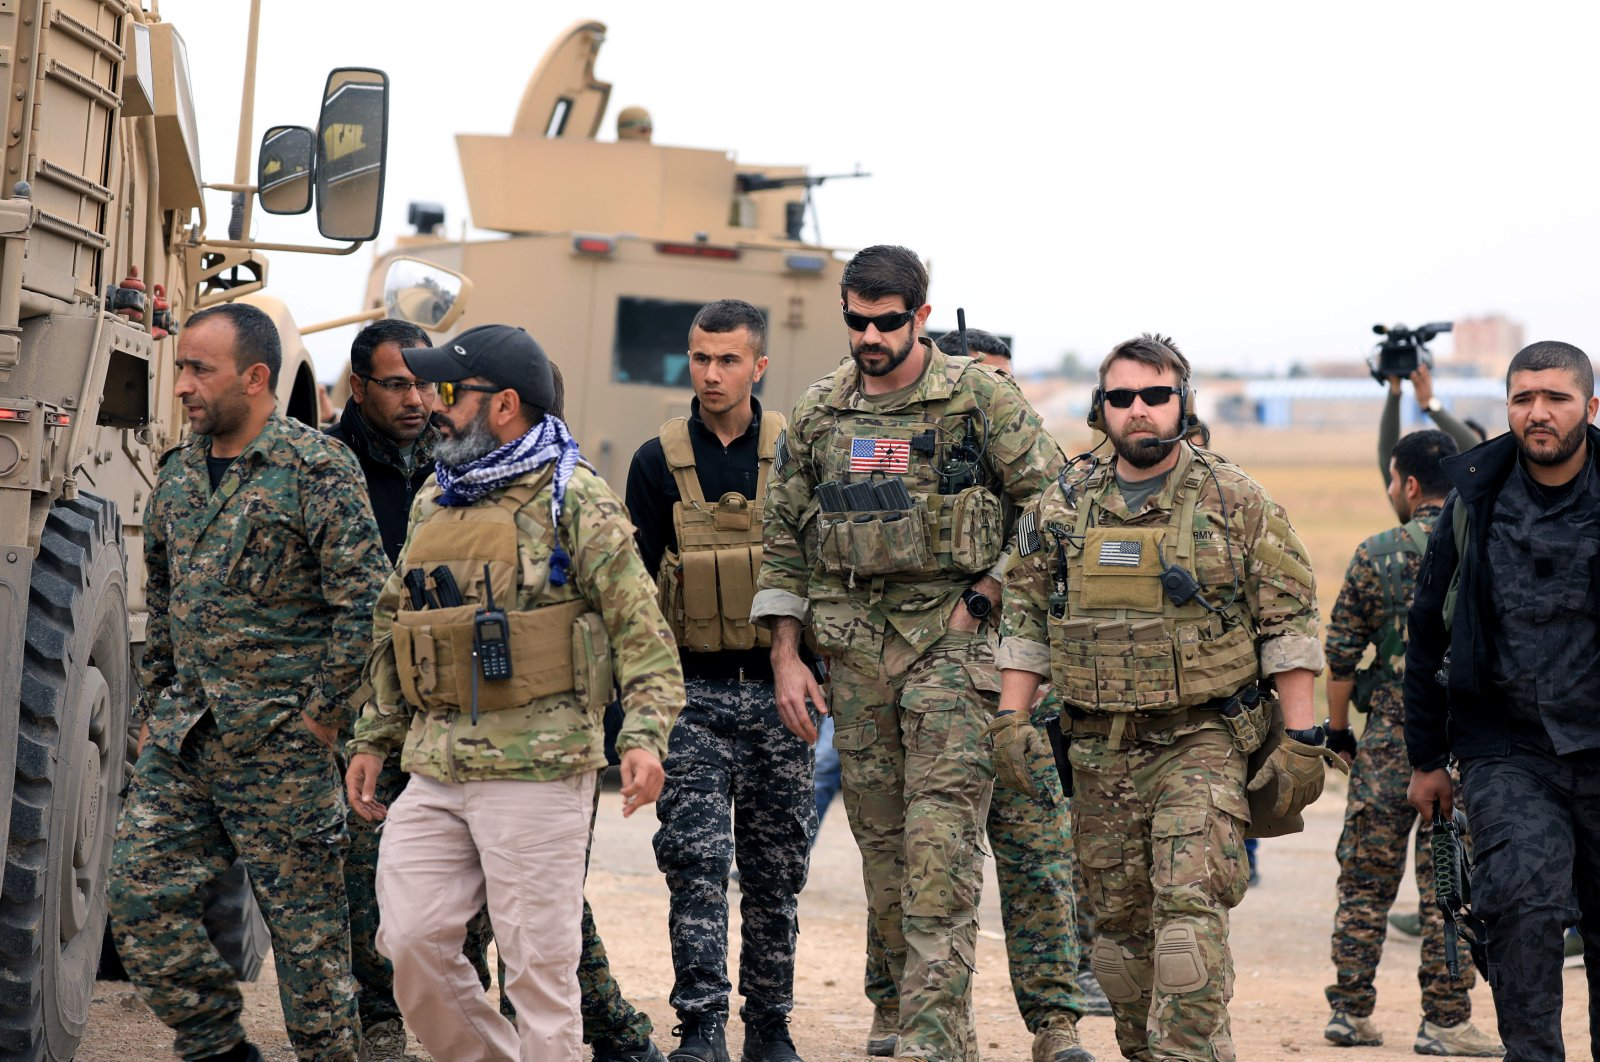 YPG/PKK terrorists and U.S. troops are seen during a joint patrol near the Turkish border in al-Hasakah, Syria, Nov. 4, 2018. (Reuters Photo)